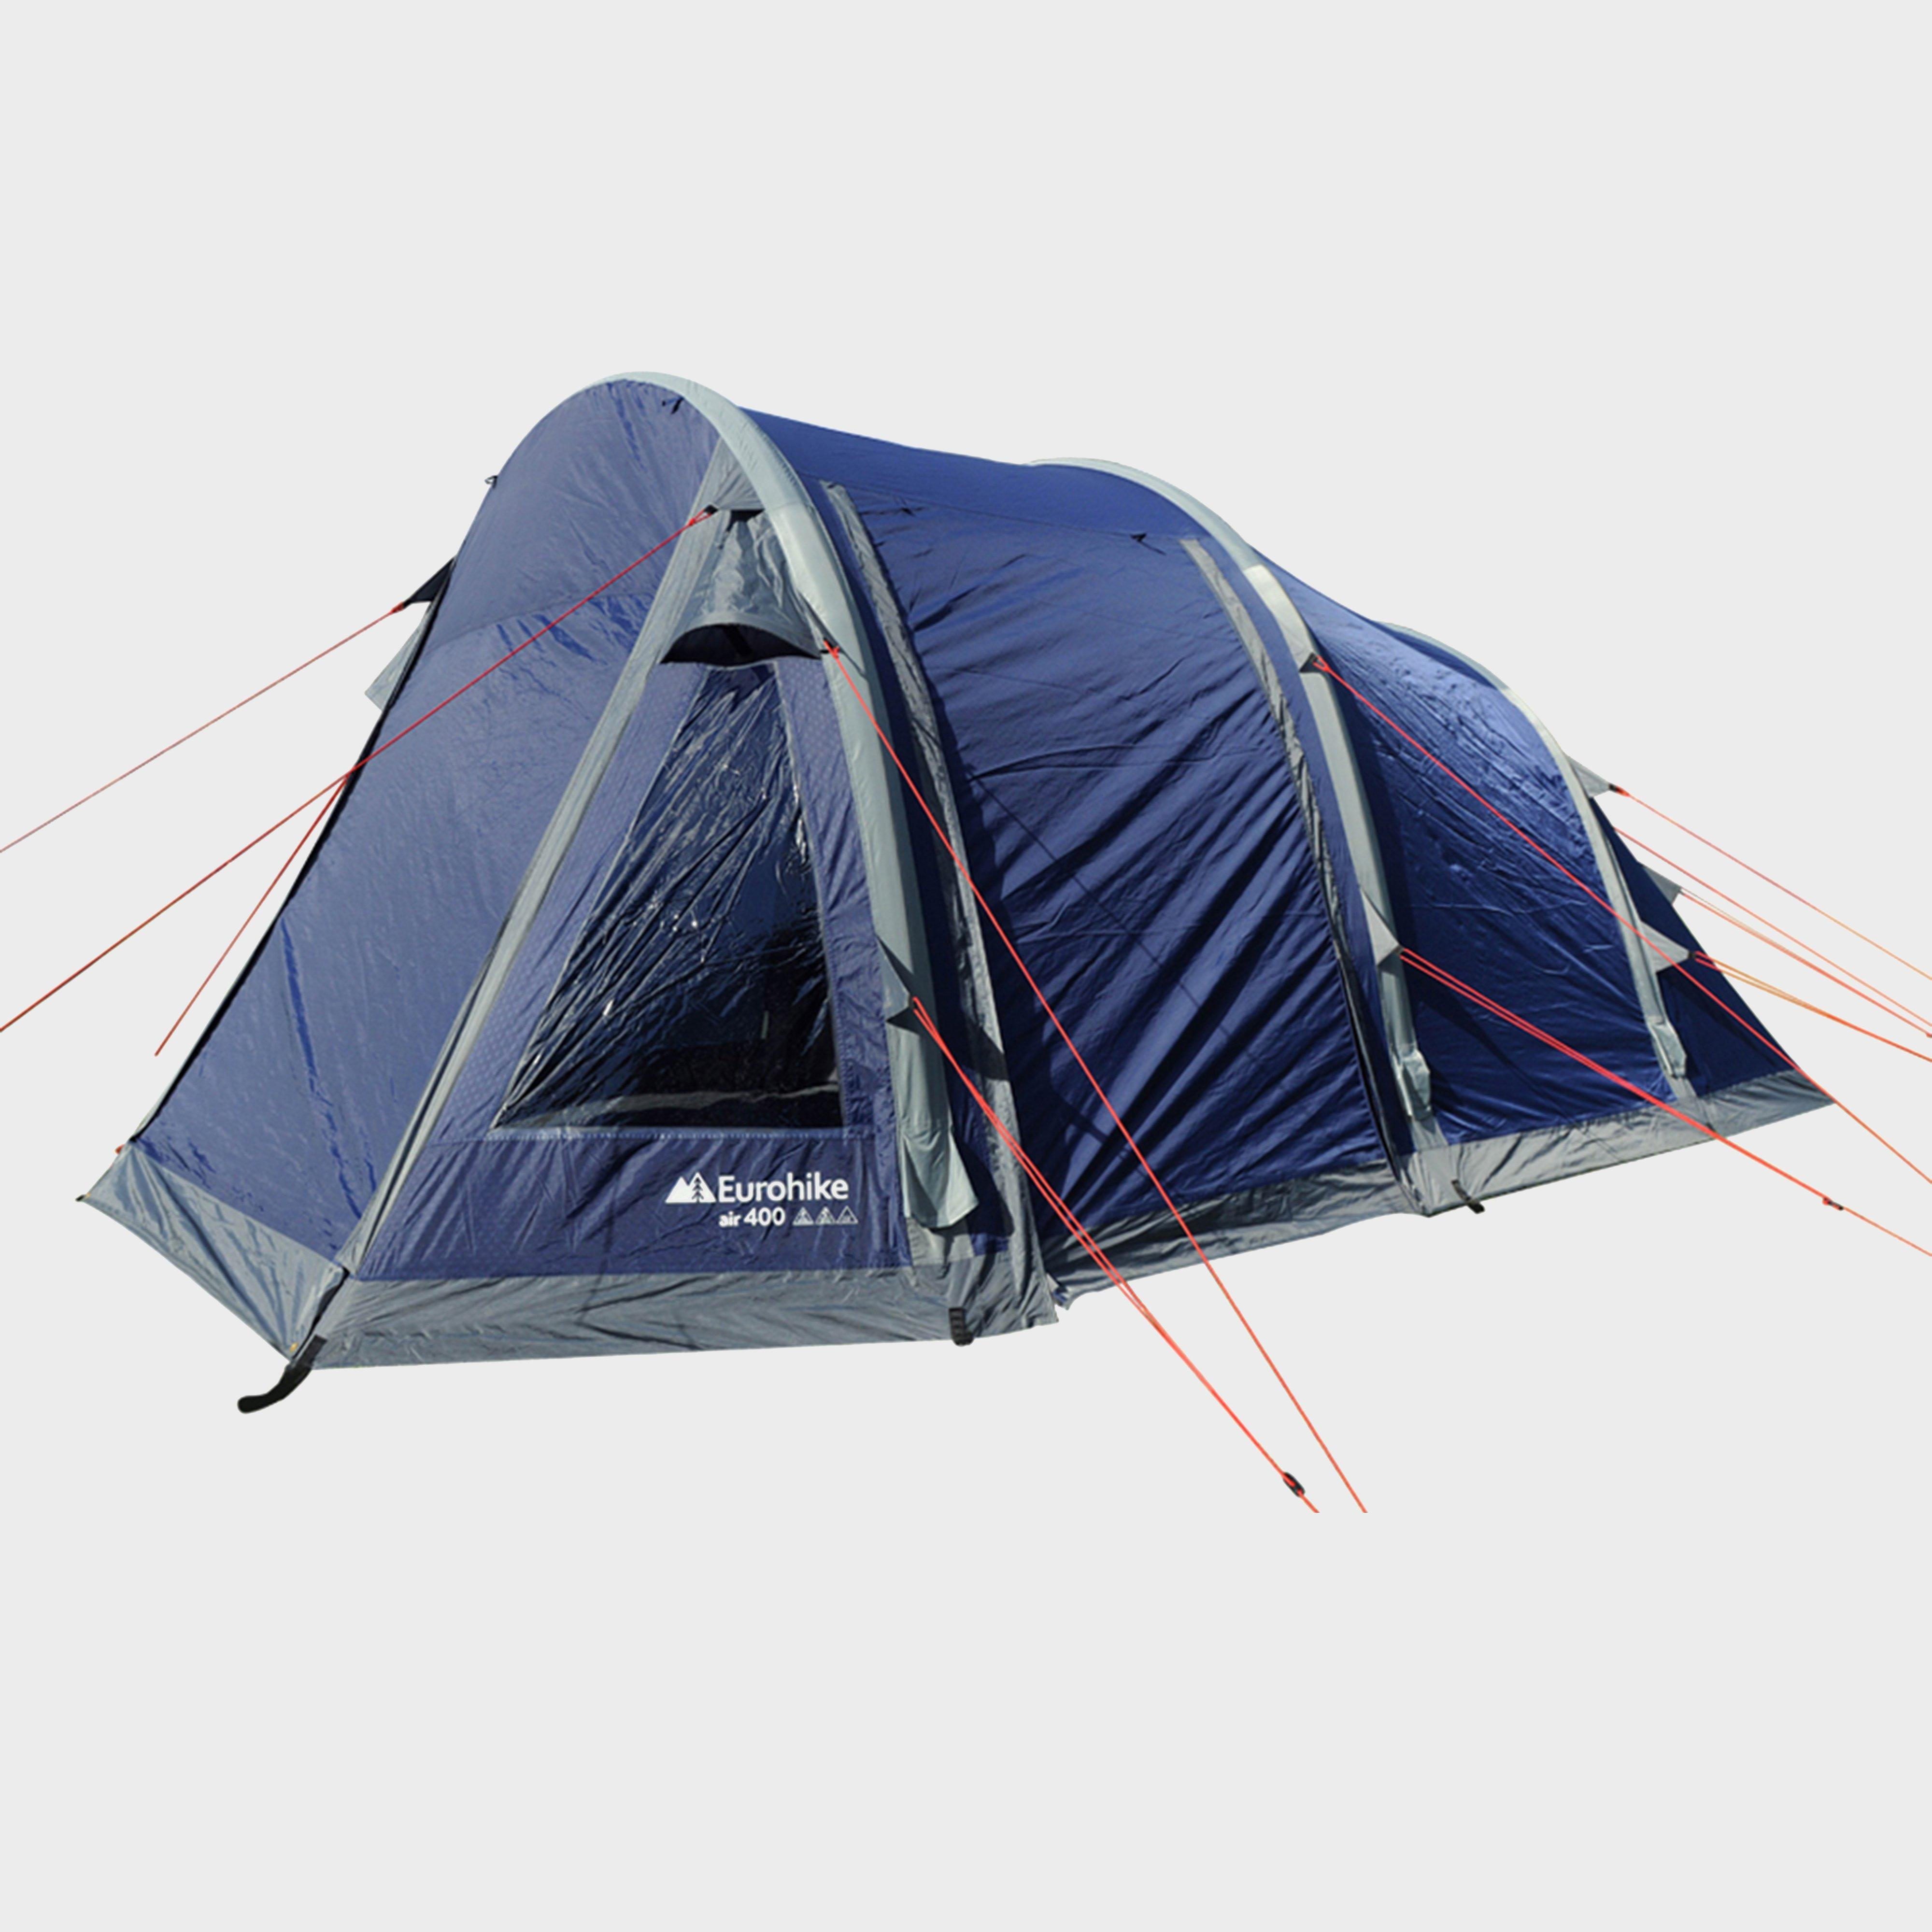 EUROHIKE Air 400 Tent & Tents | Camping Tents | 1 to 8 Man Tents | Blacks